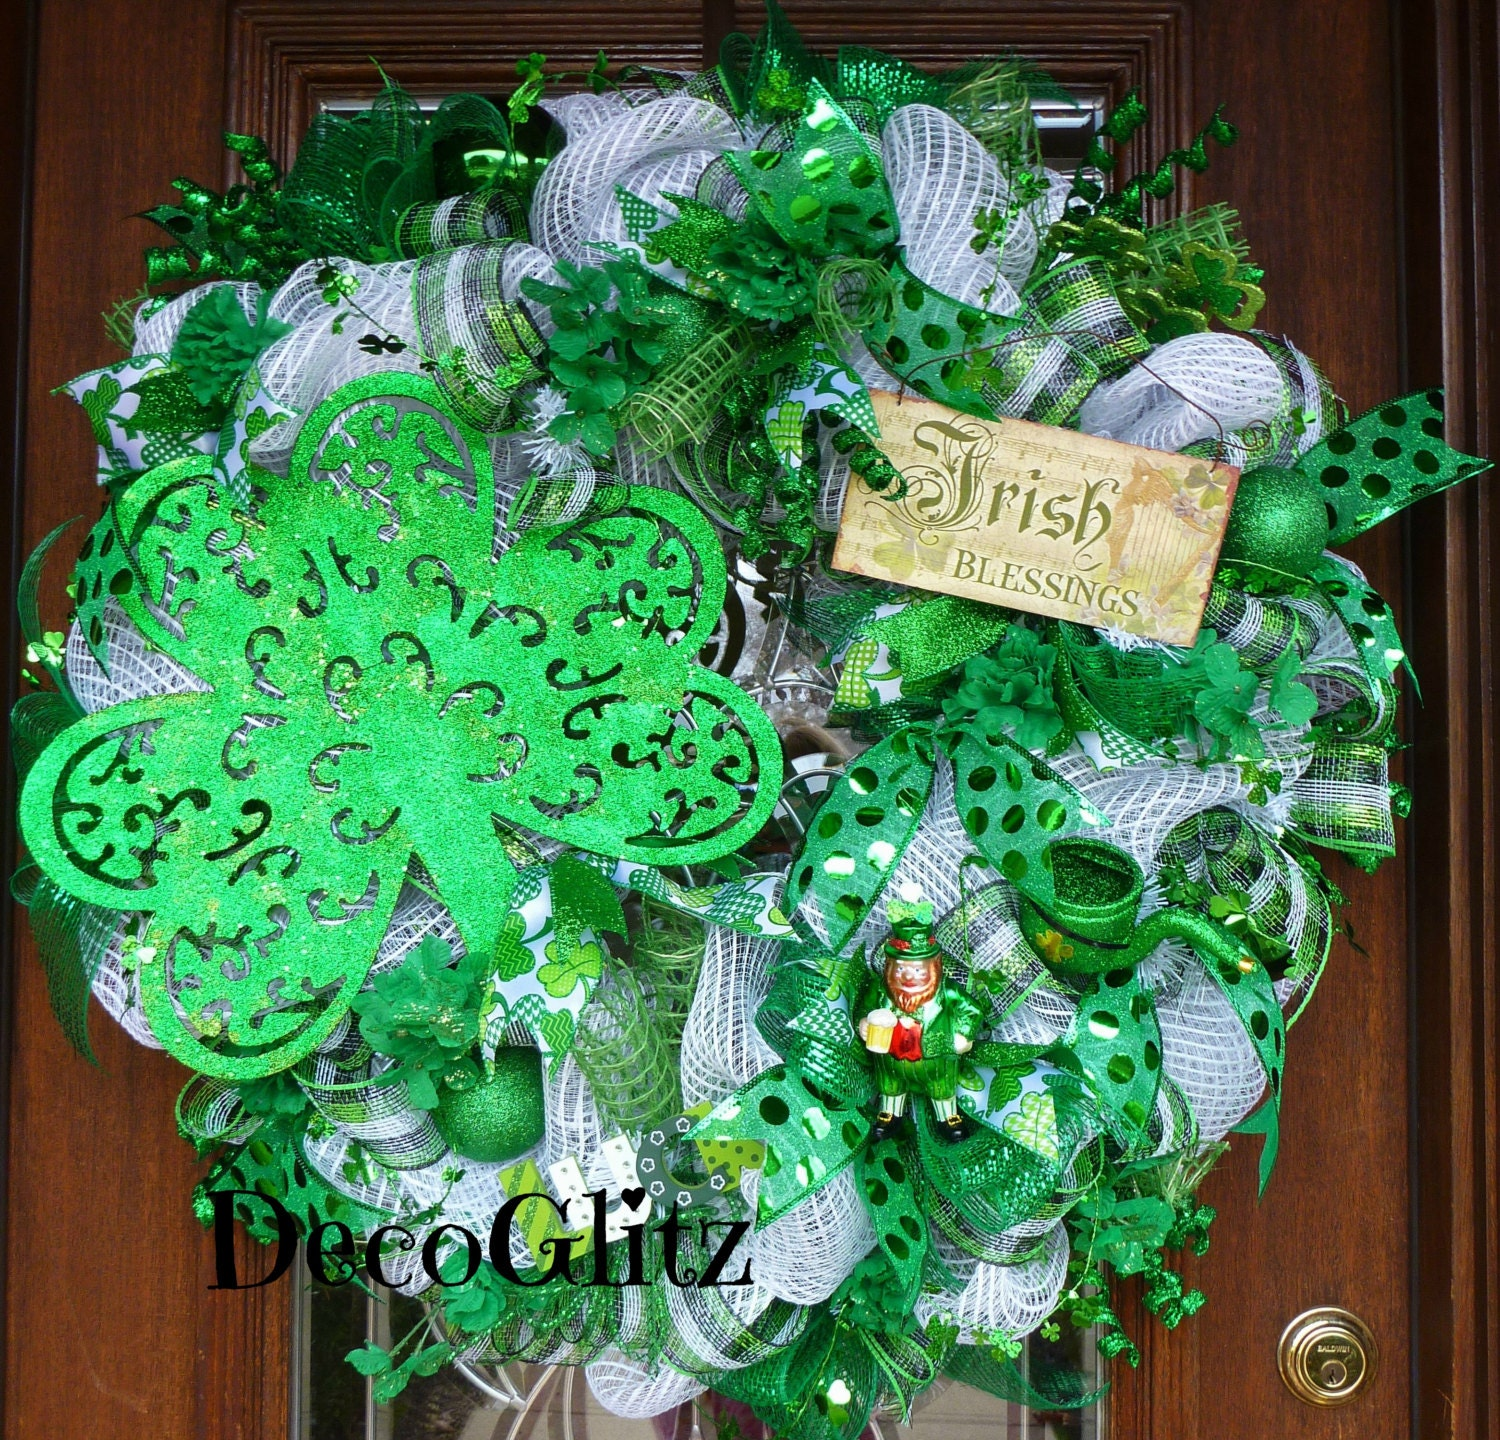 30 deco mesh irish blessings st patrick 39 s day wreath by decoglitz. Black Bedroom Furniture Sets. Home Design Ideas